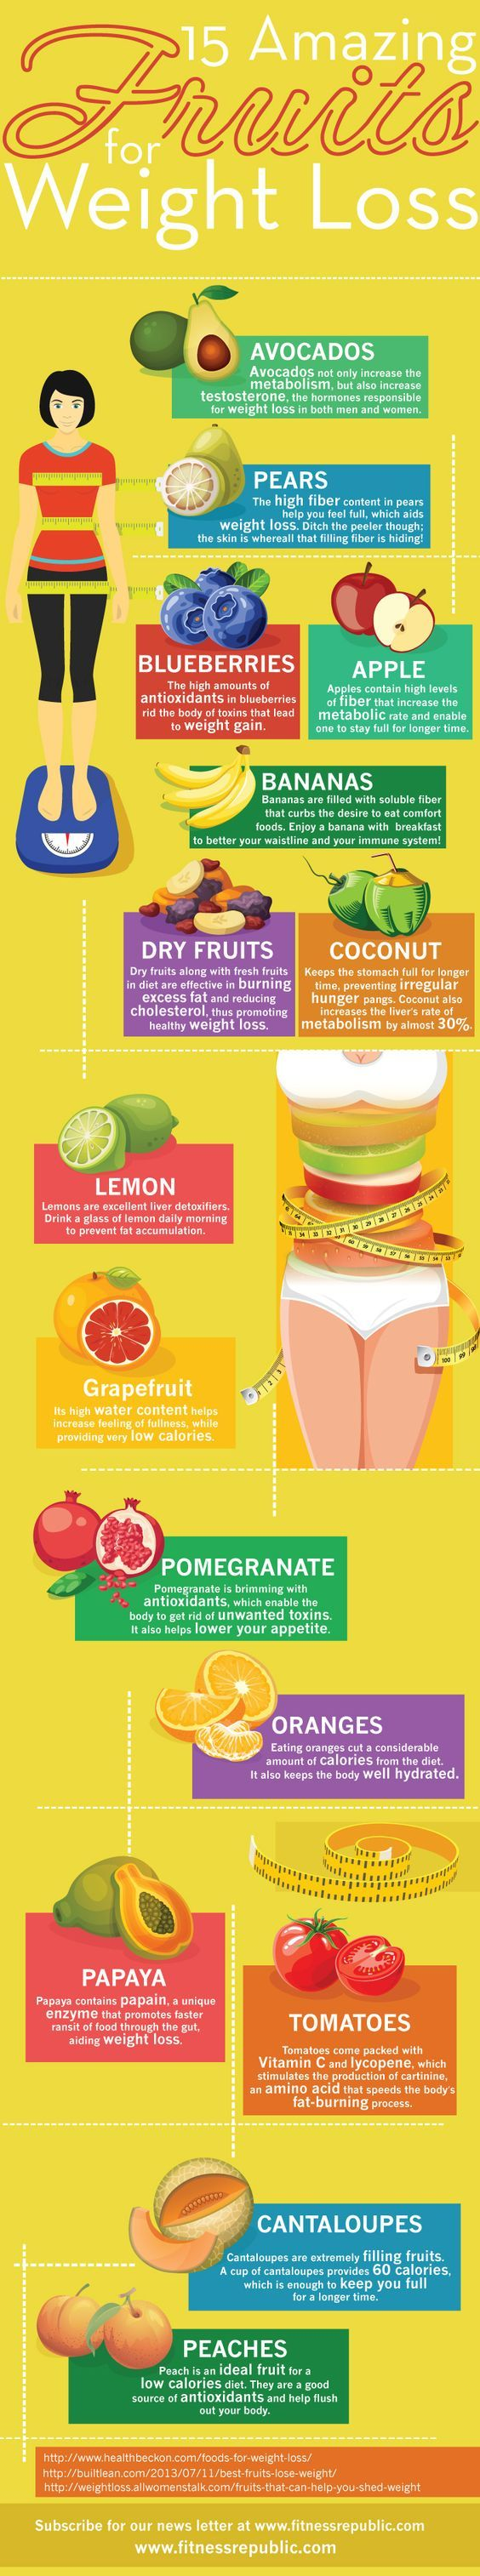 Want a slim summer-body? Why not try fruits this time! Fruits may have a bad rep when it comes to weight loss because it has sugar. But did you know there are some fruits that actually work to help burn fat? -: